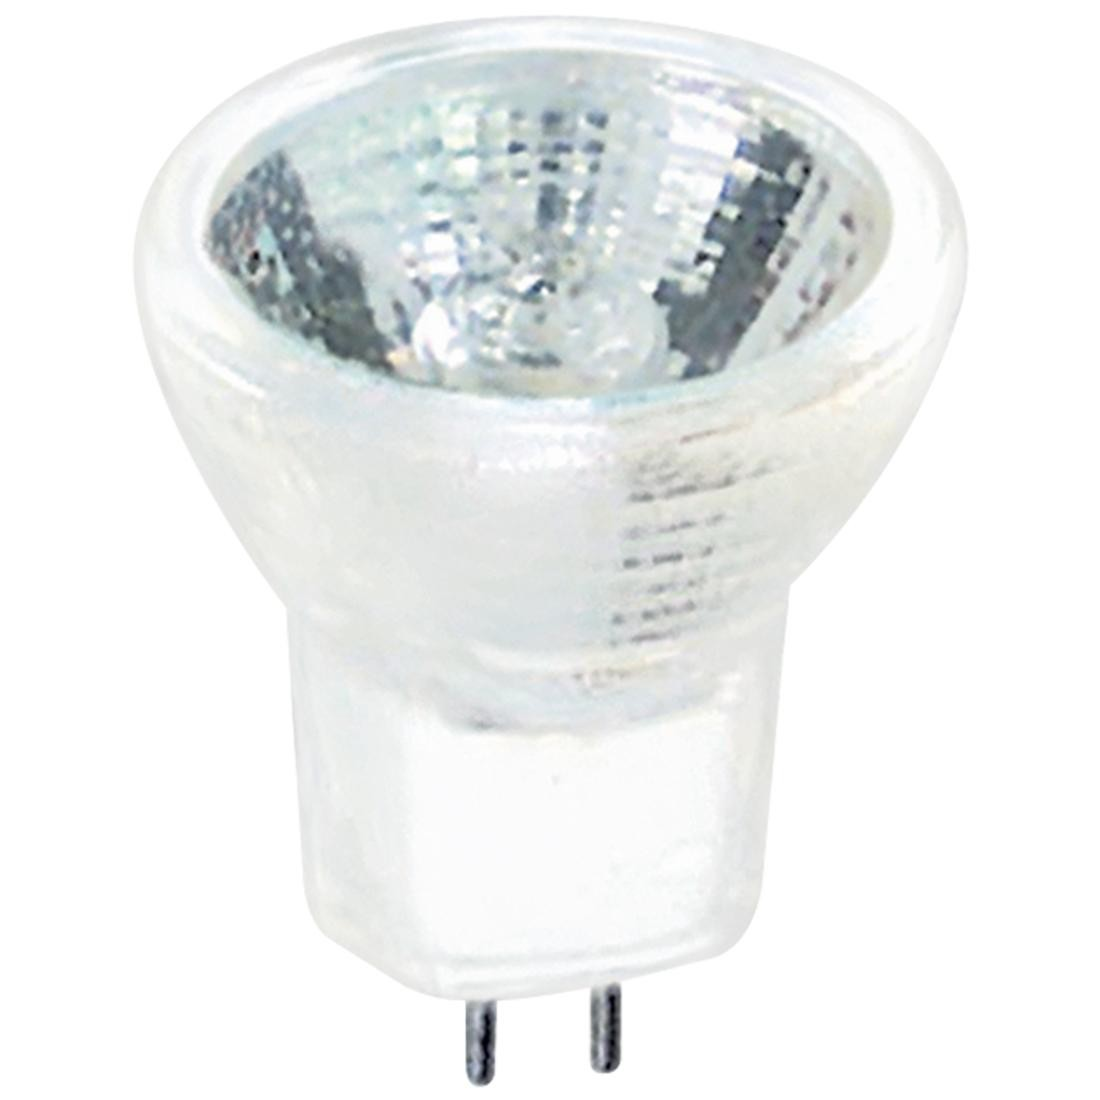 Mr8 6v 5w Fl 5w 6v Mr8 Gz4 Base Flood Halogen Bulb